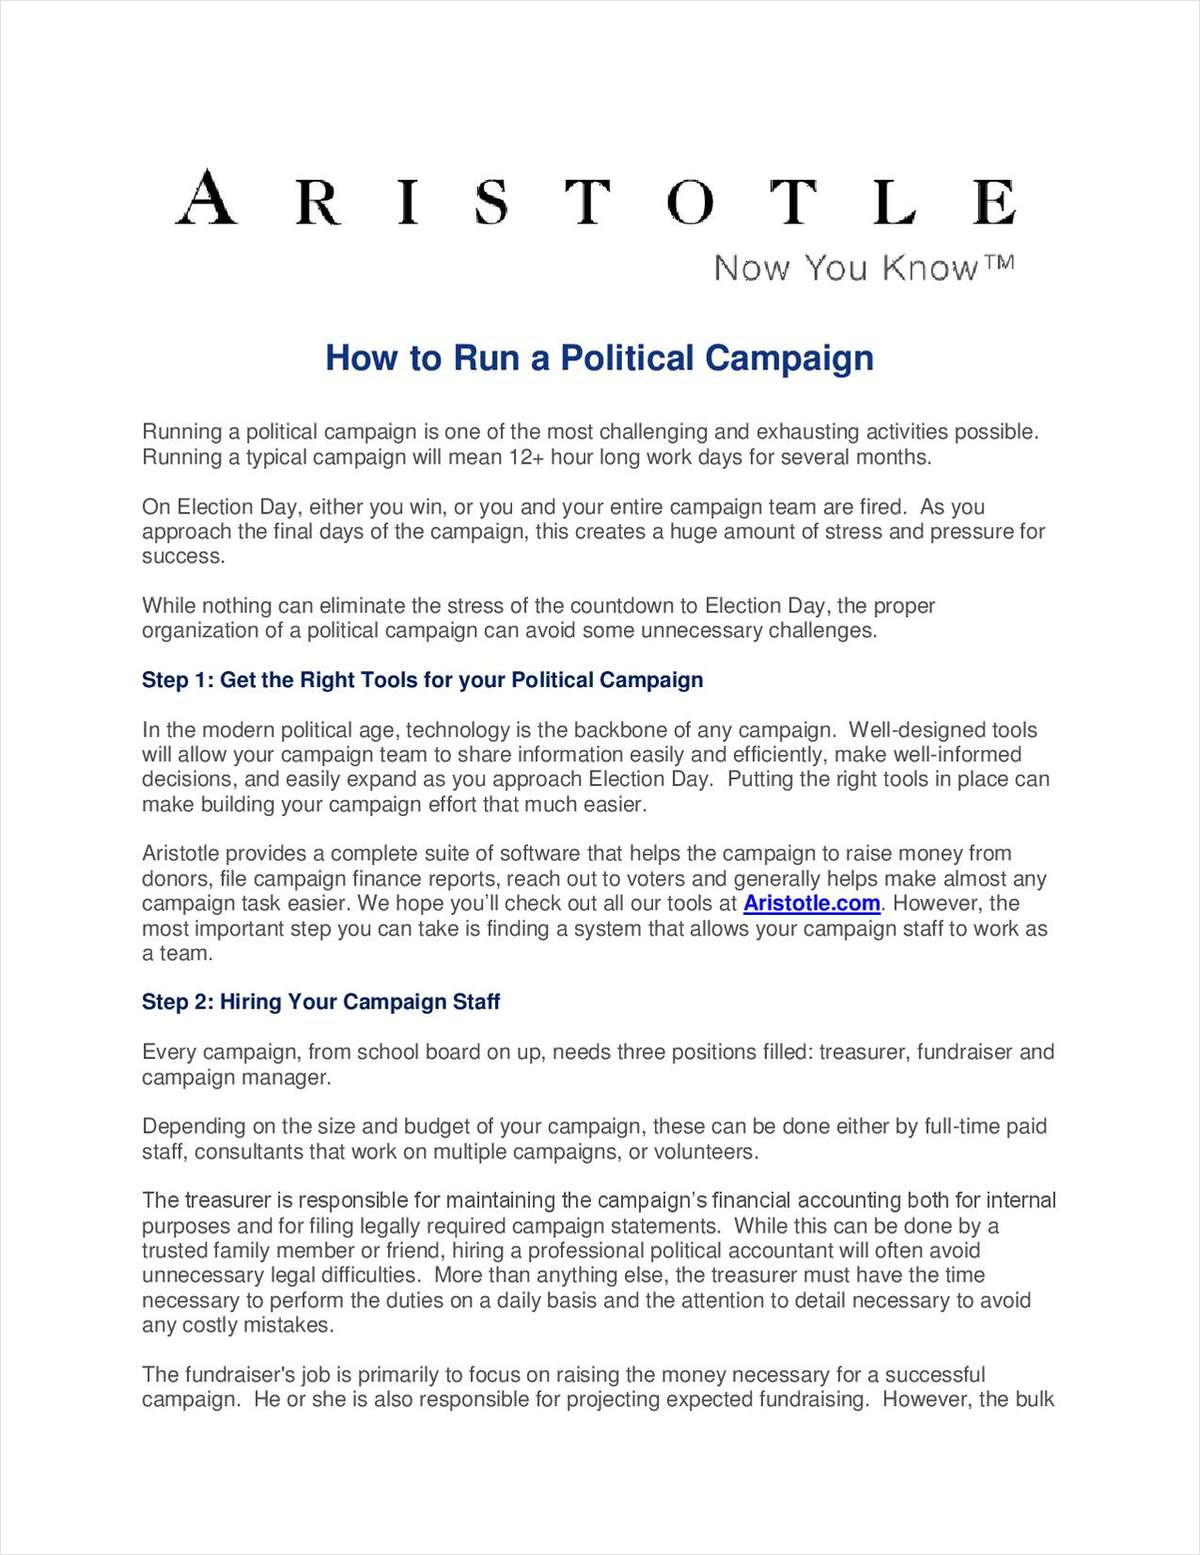 How to Run a Political Campaign